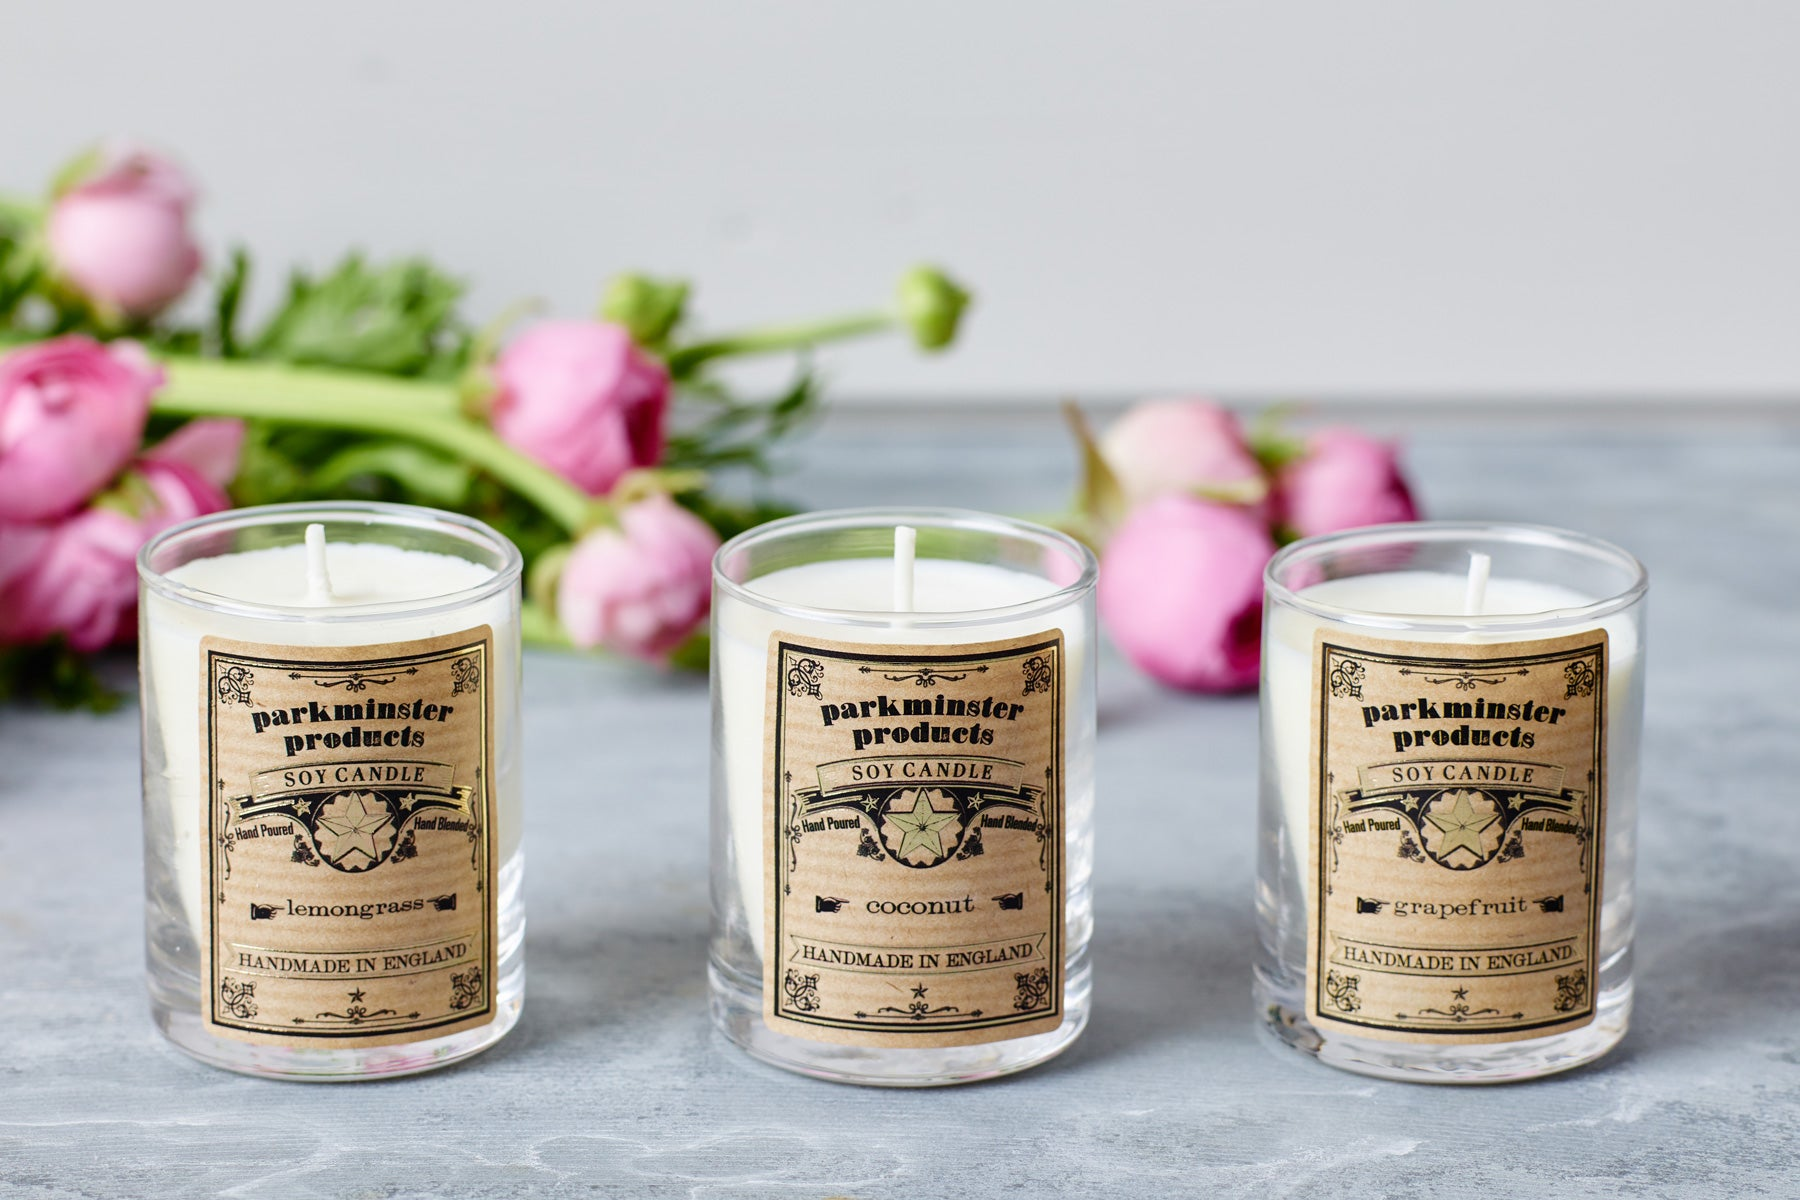 Parkminster Scented Votive Candle Triple Pack - Introduce three beautifiul scents to your home or give as a gift